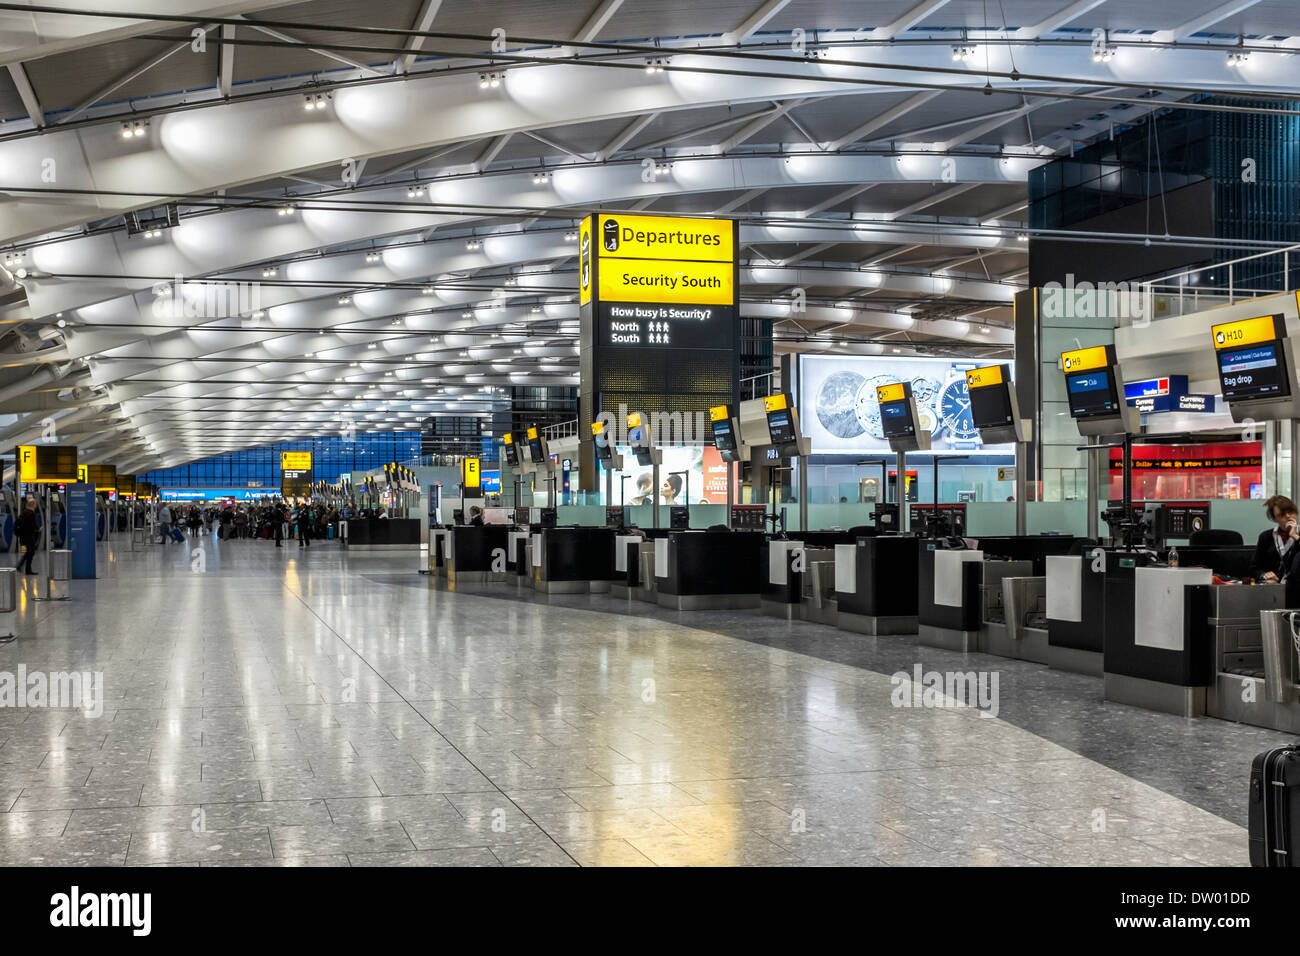 Modern architecture, elegant curved roof and check-in area in departure hall of Terminal 5 T5, Heathrow Airport, - Stock Image